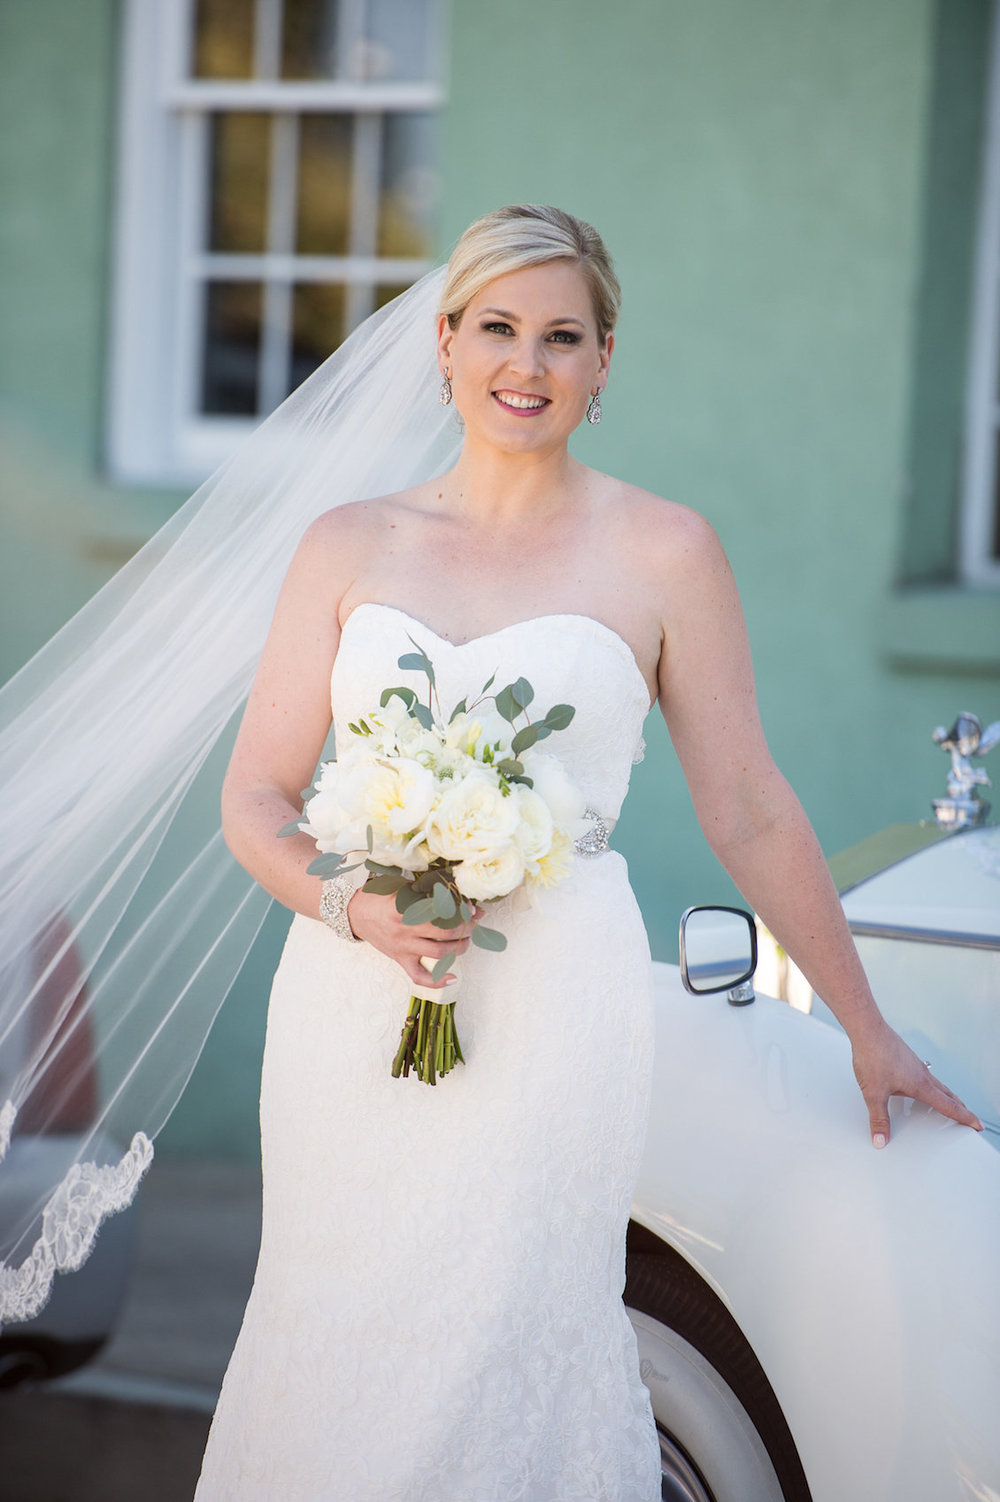 Elegant Summer Wedding in Florida - Bridal Portrait / Séverine Photography